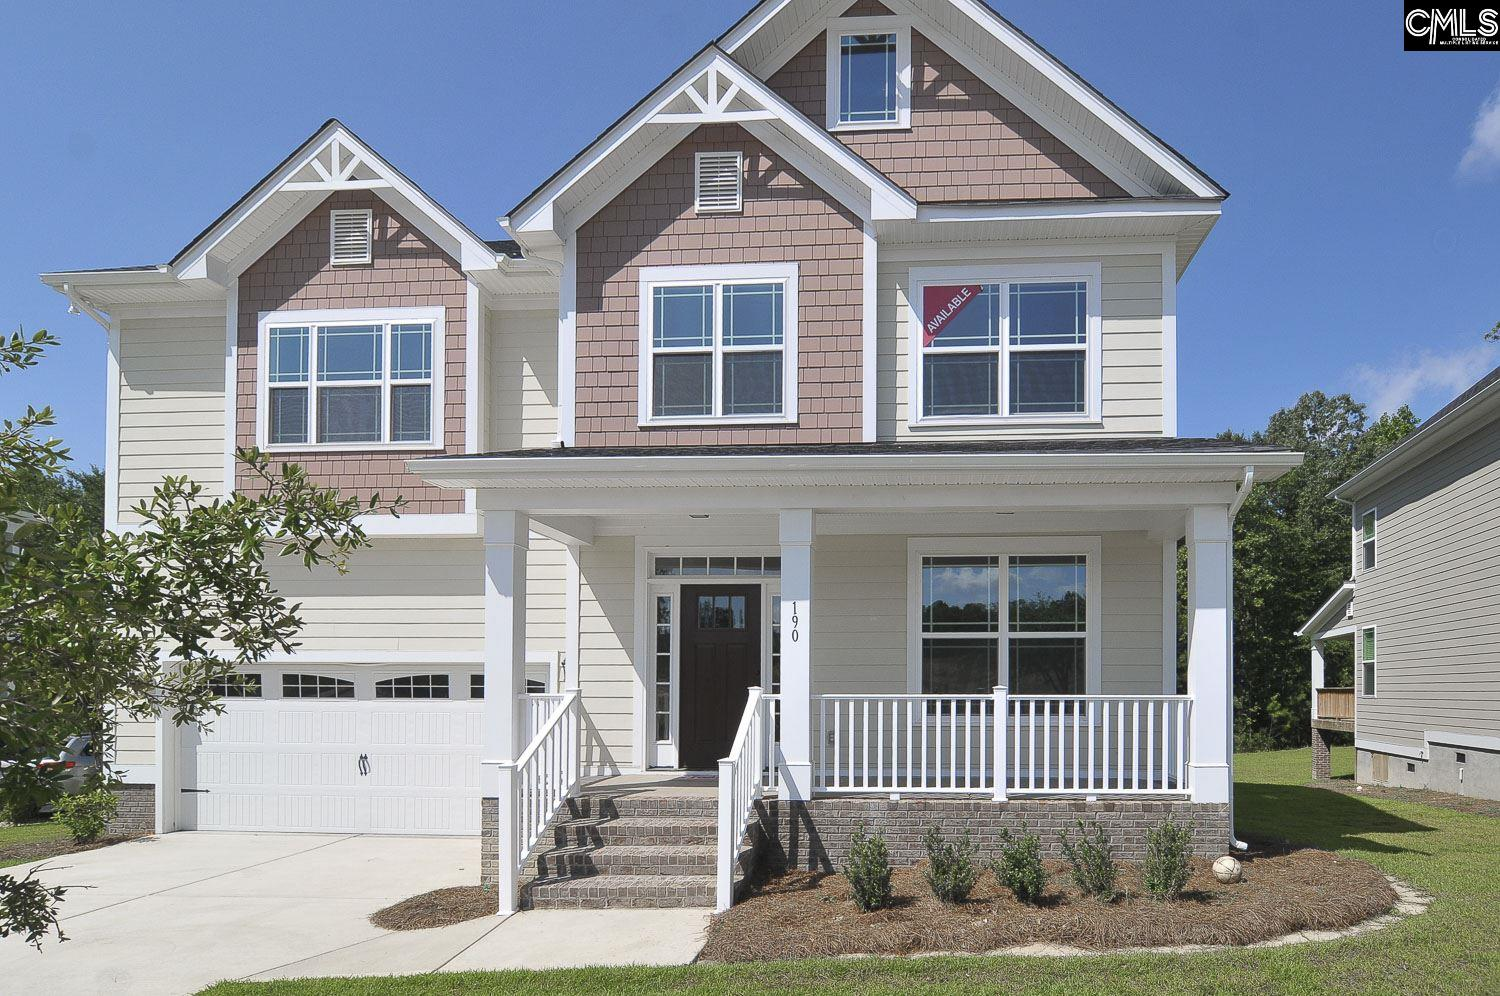 190 Baysdale #73 Columbia, SC 29229